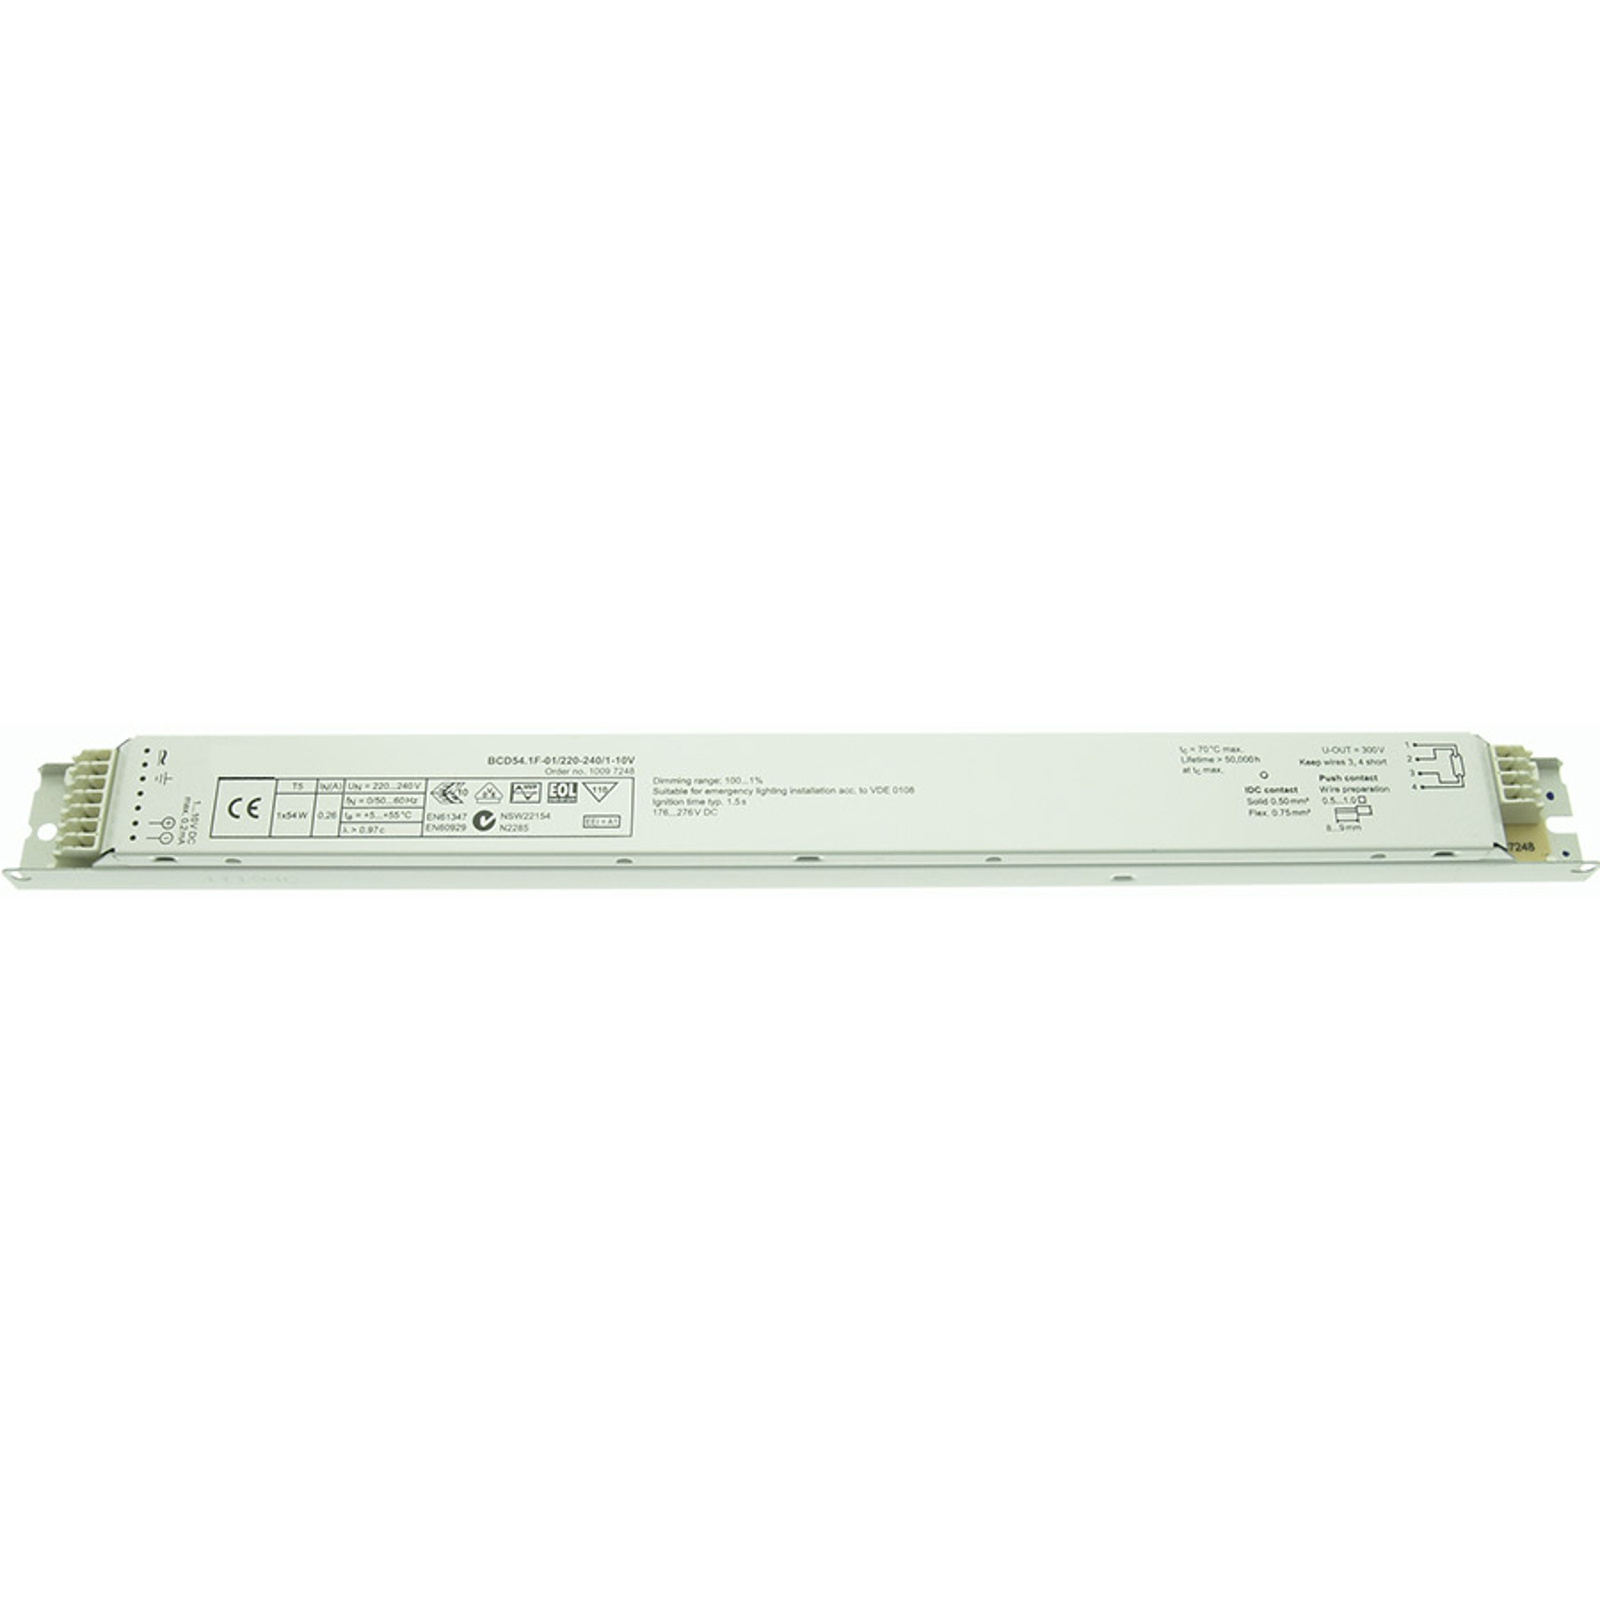 BE dimmable 1x54W T5 BCD54.1F-01/220-240/1-10V